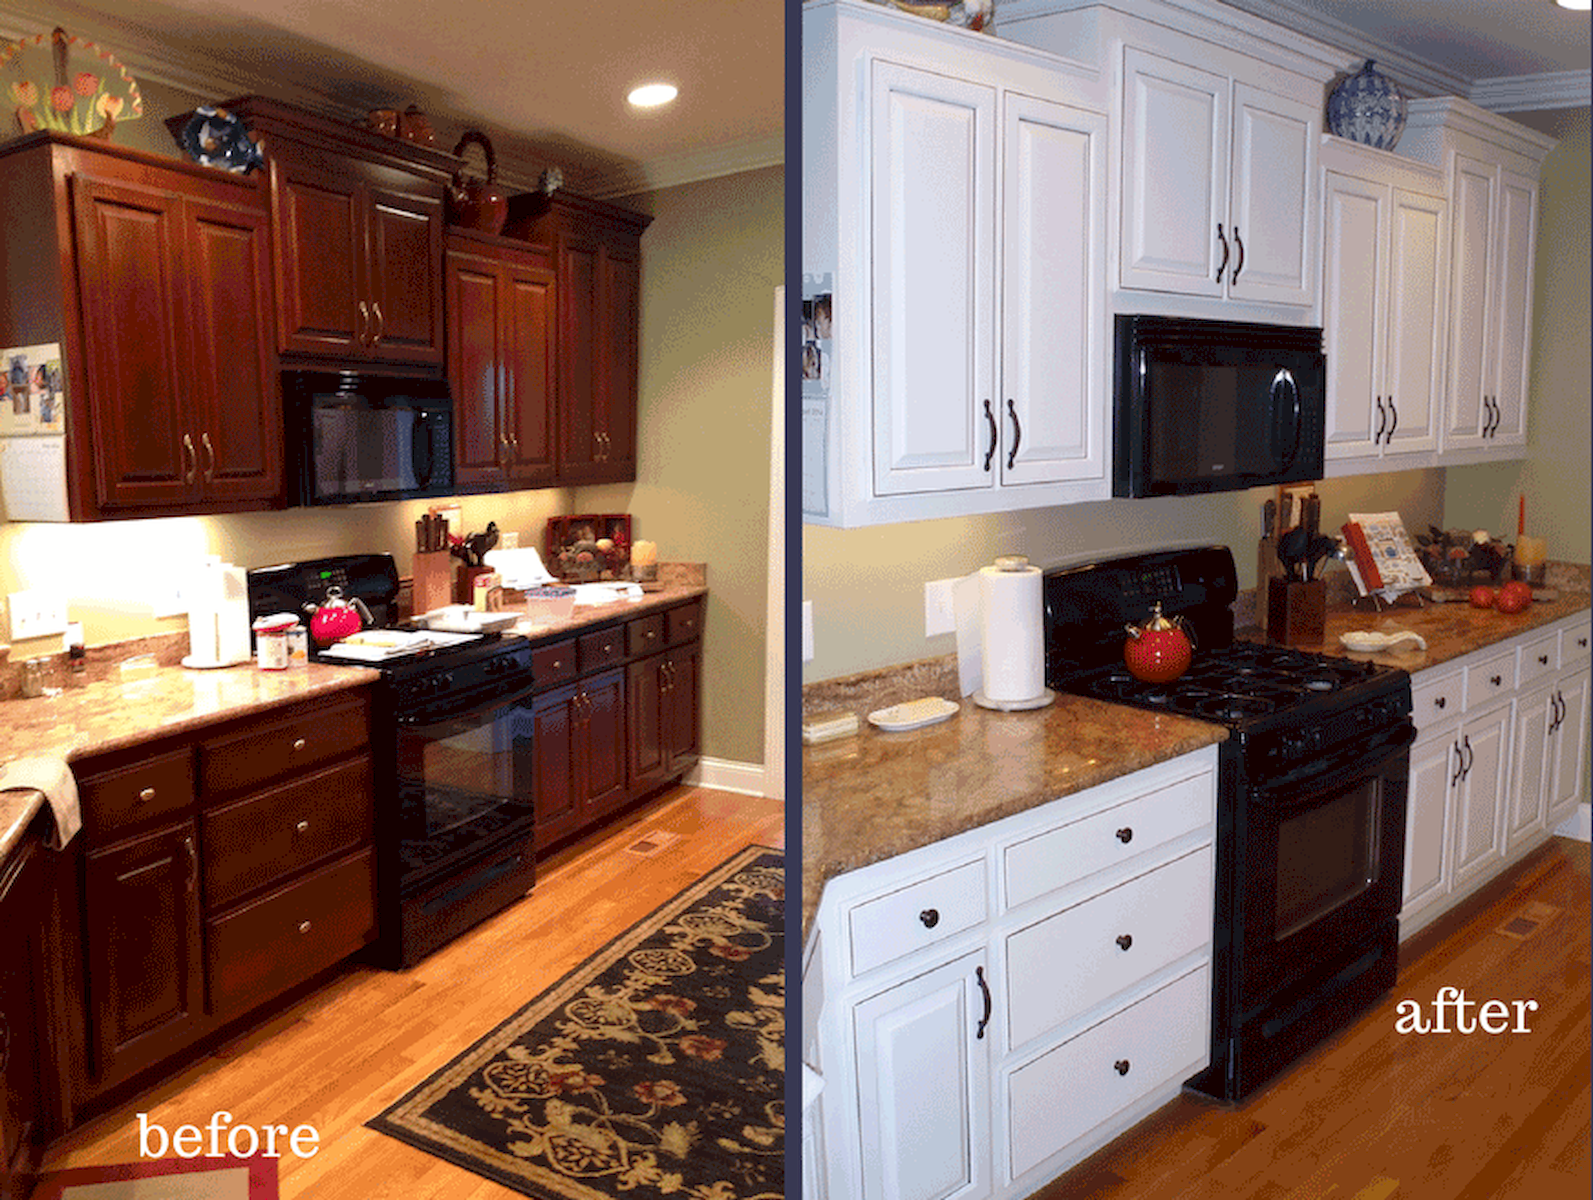 before after painted kitchen cabinet idea home design kitchen cabinets before and after on kitchen cabinets painted before and after id=82770